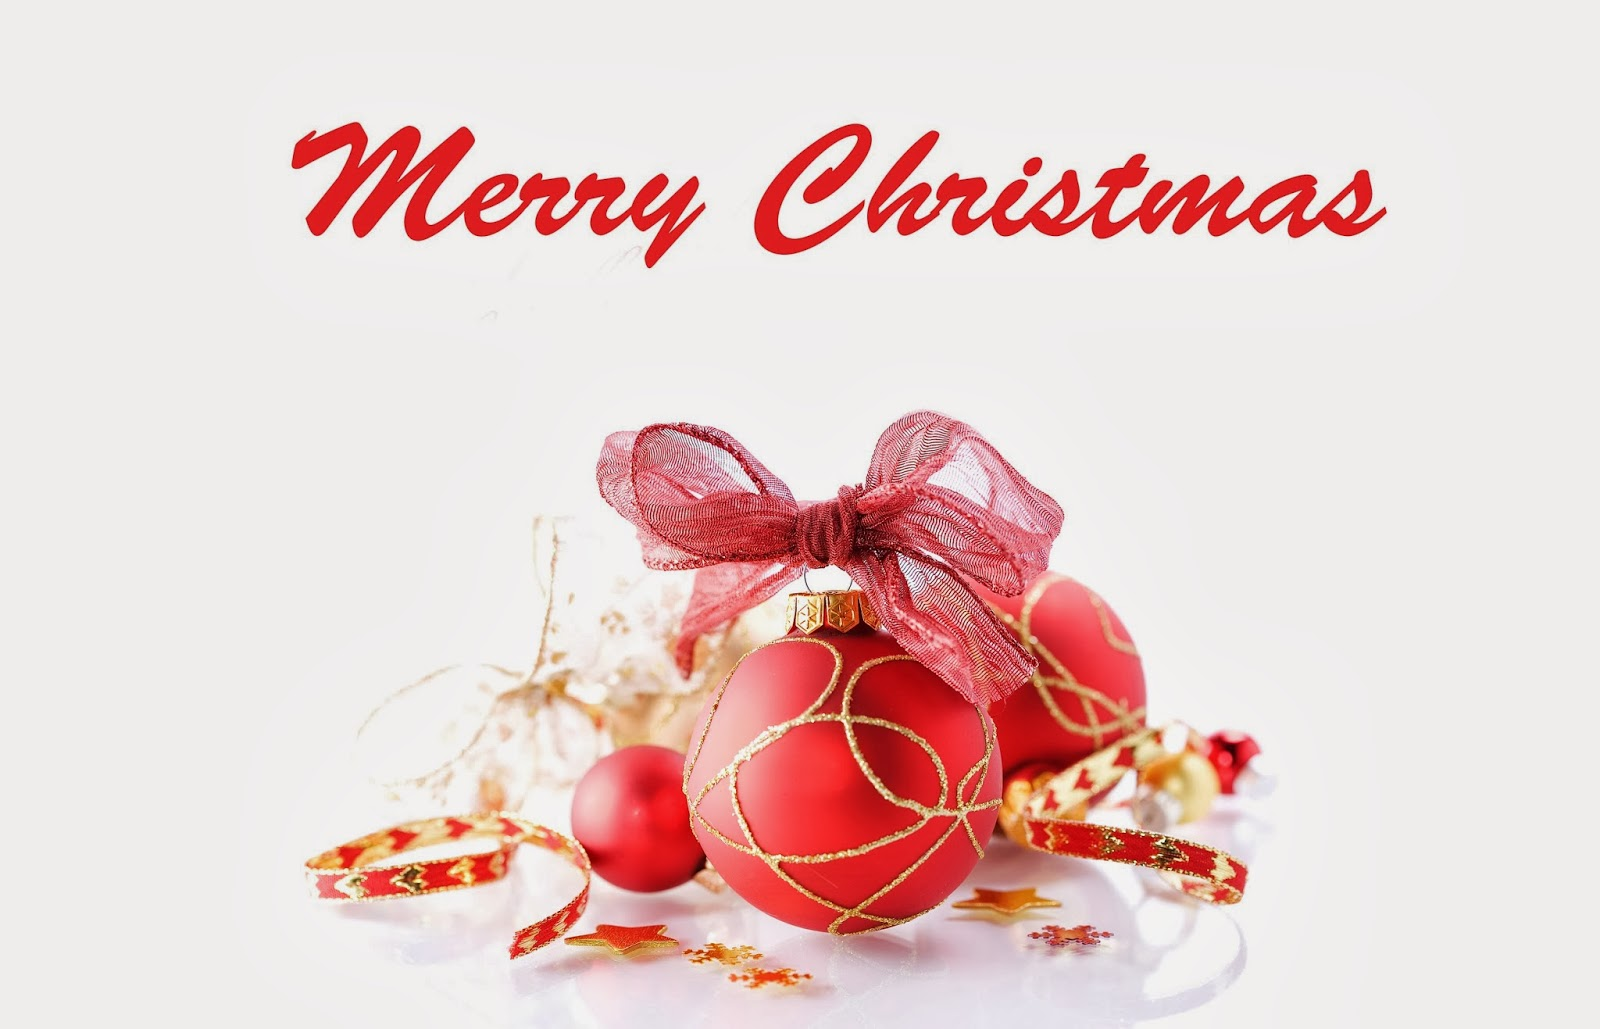 Merry Christmas 2014 Greetings e-Cards,Wallpapers,Cards: 2014 Gift ...